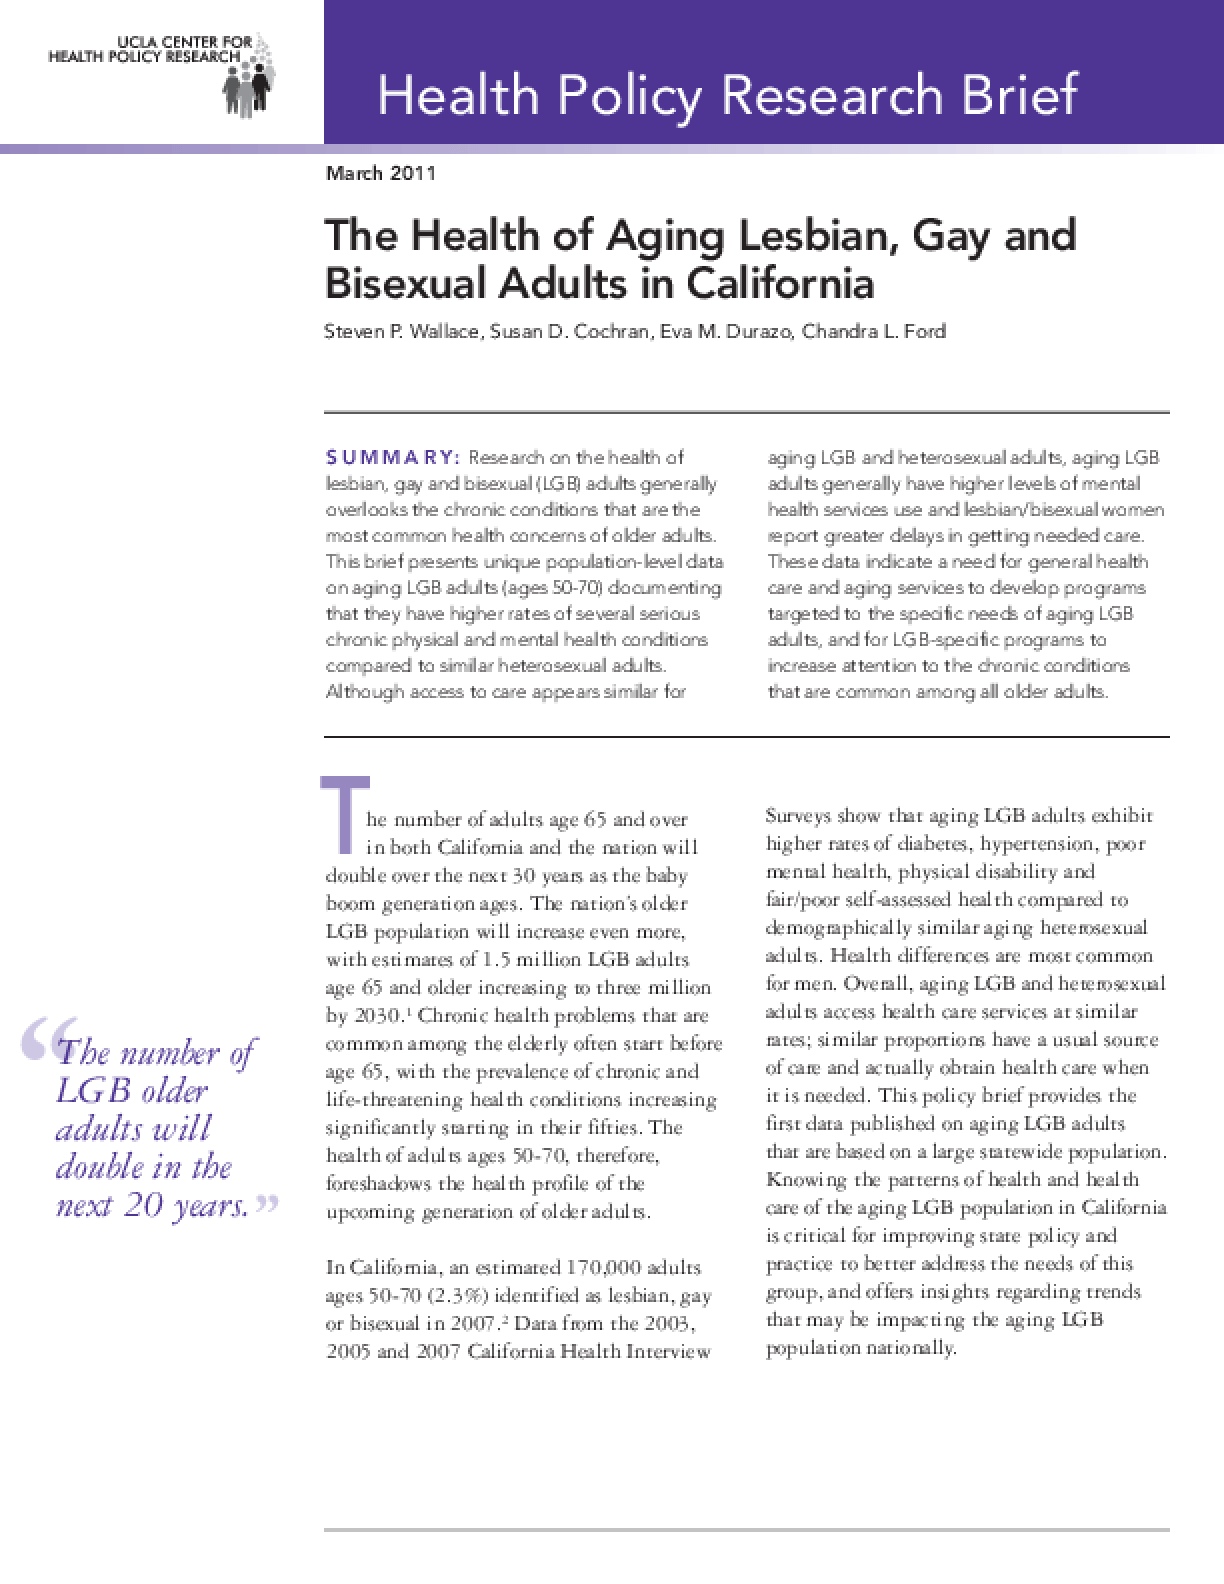 The Health of Aging Lesbian, Gay and Bisexual Adults in California